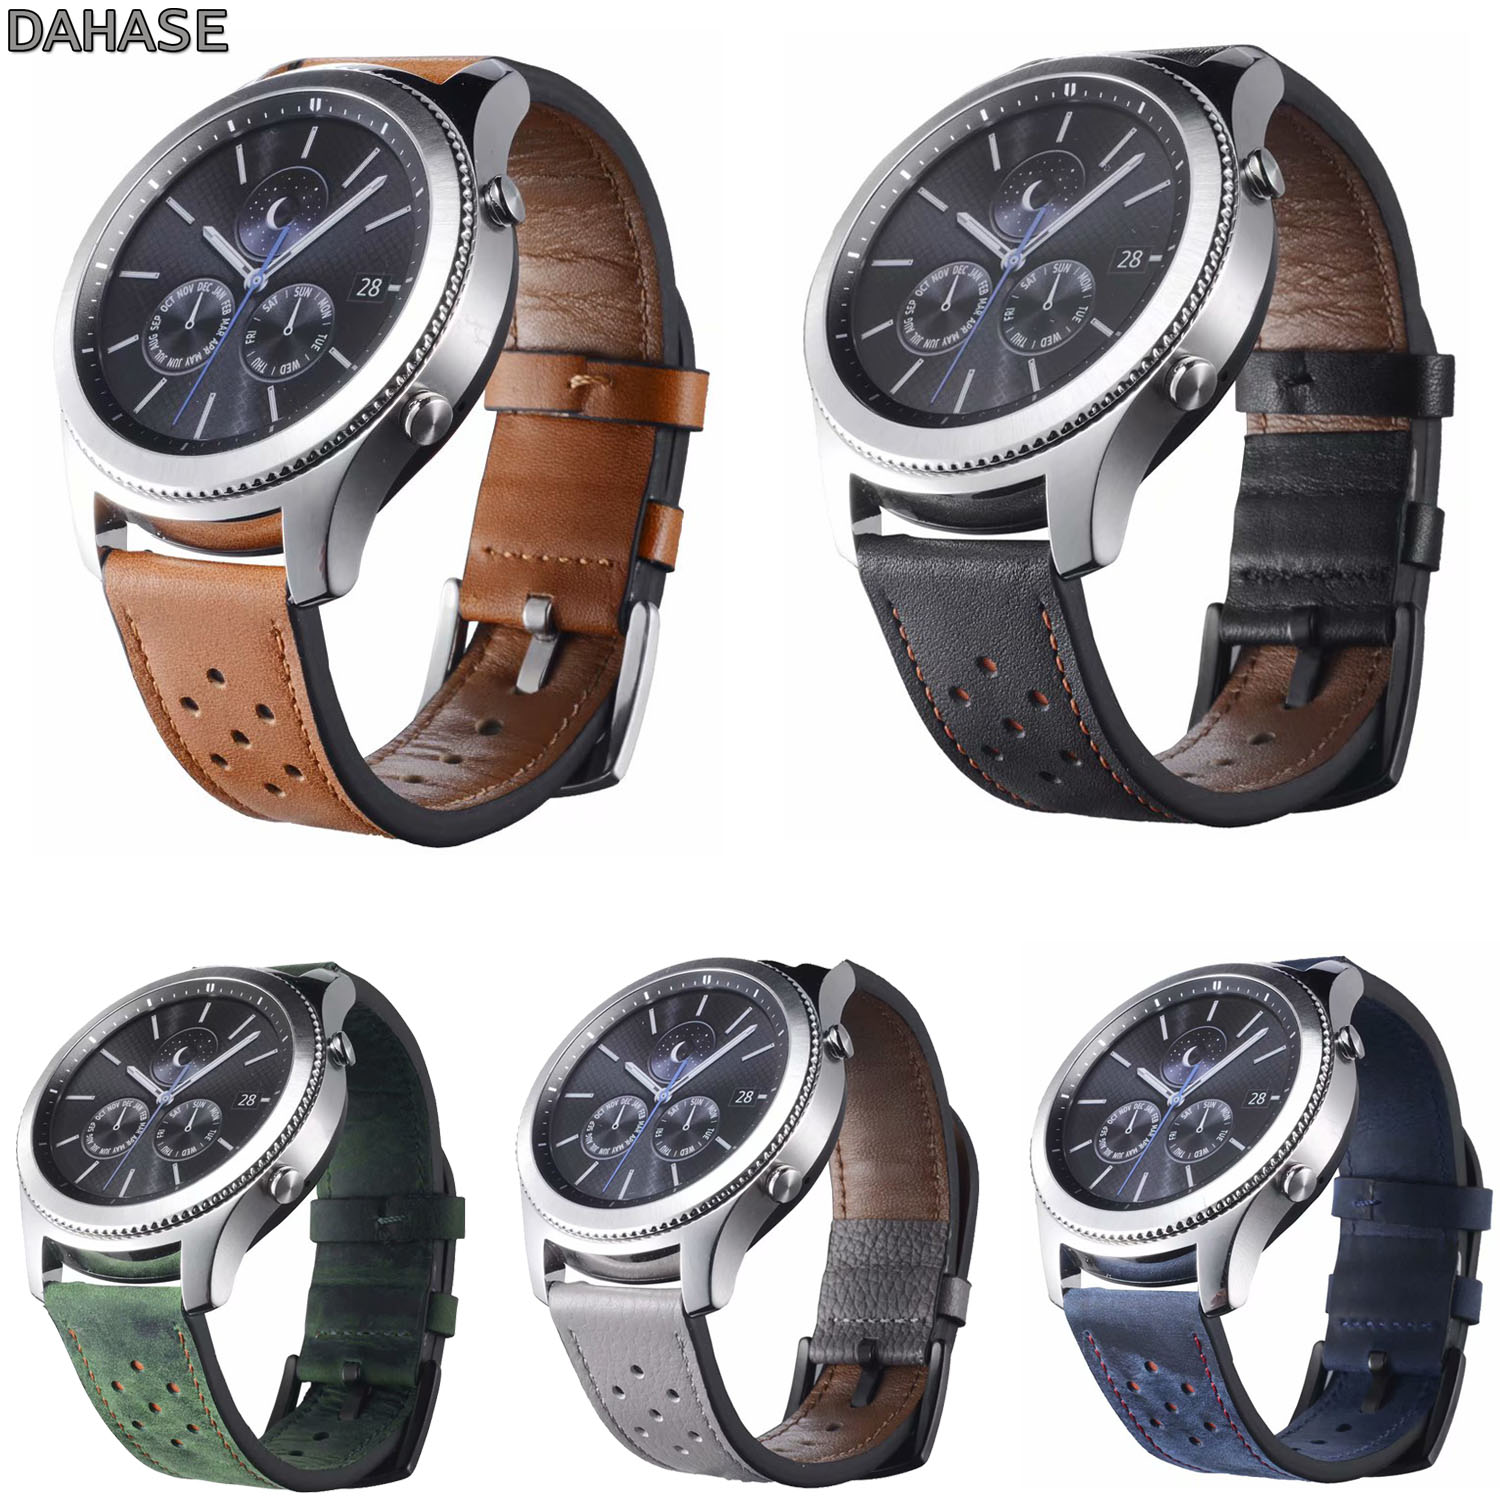 DAHASE Genuine Leather Watch Strap For Samsung Gear S3 Band Replacement Hole Watch Bracelet For Gear S3 Classic Frontier 22mm gear s3 frontier classic watch band 22mm soft silicone man watch replacement bracelet strap for samsung gear s3